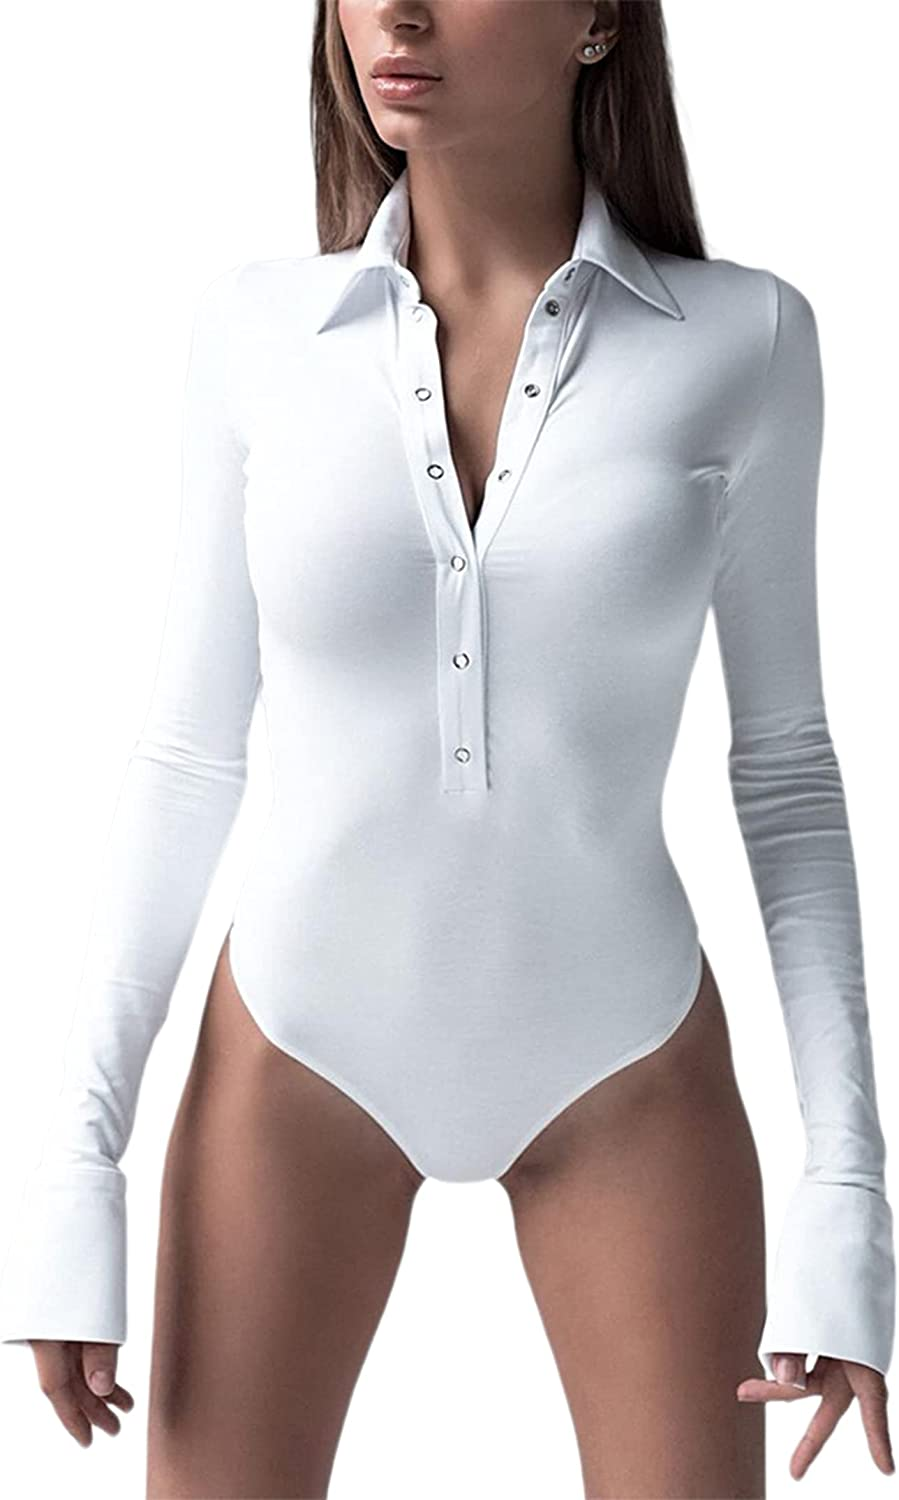 LilyCoco Womens Collared Long Sleeve Bodysuit Button Down Stretchy Bodycon Leotard Top